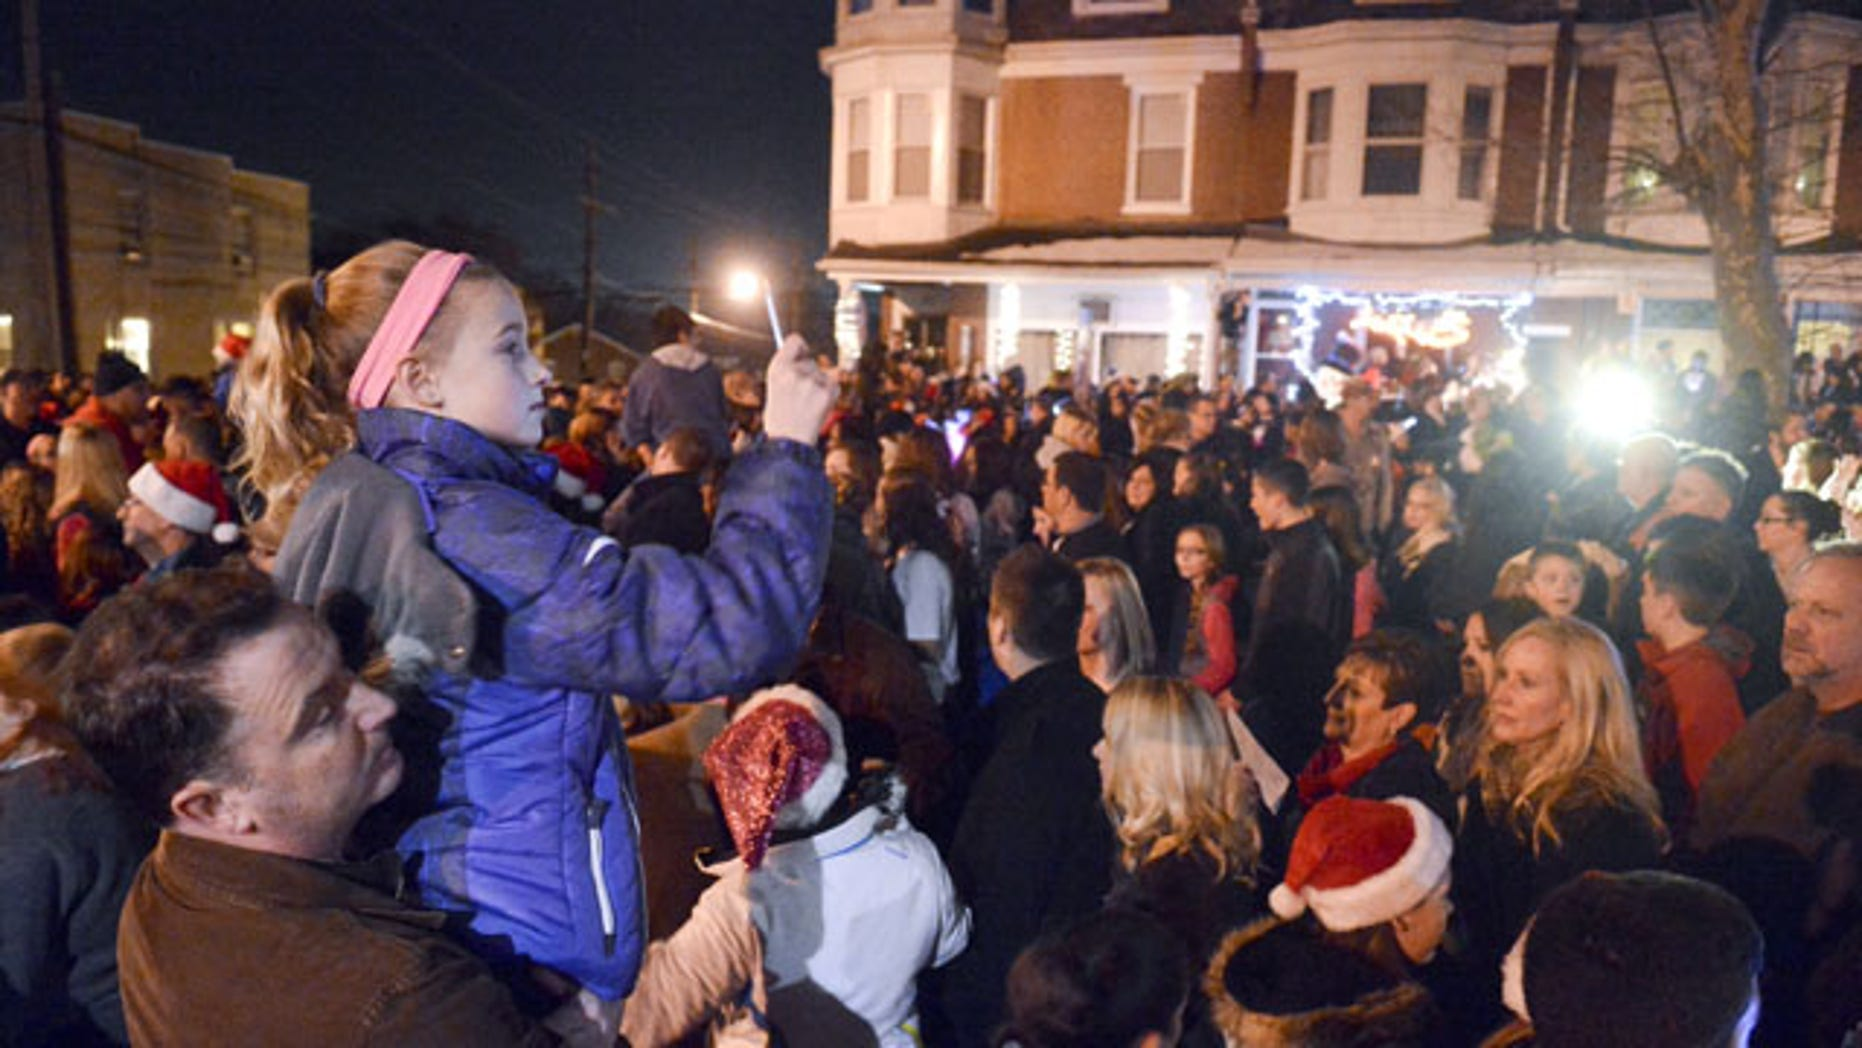 """December 21, 2013:Mike Simmons holds his daughter Gracie Simmons, 11, both of Wyomissing, while Gracie shoots video of the caroling in West Reading, Pa., where thousands of people came out to sing Christmas carols in front of the home of Delaney """"Laney"""" Brown, 8, who is terminally ill with a rare form of leukemia. (AP Photo/Reading Eagle, Ben Hasty)"""